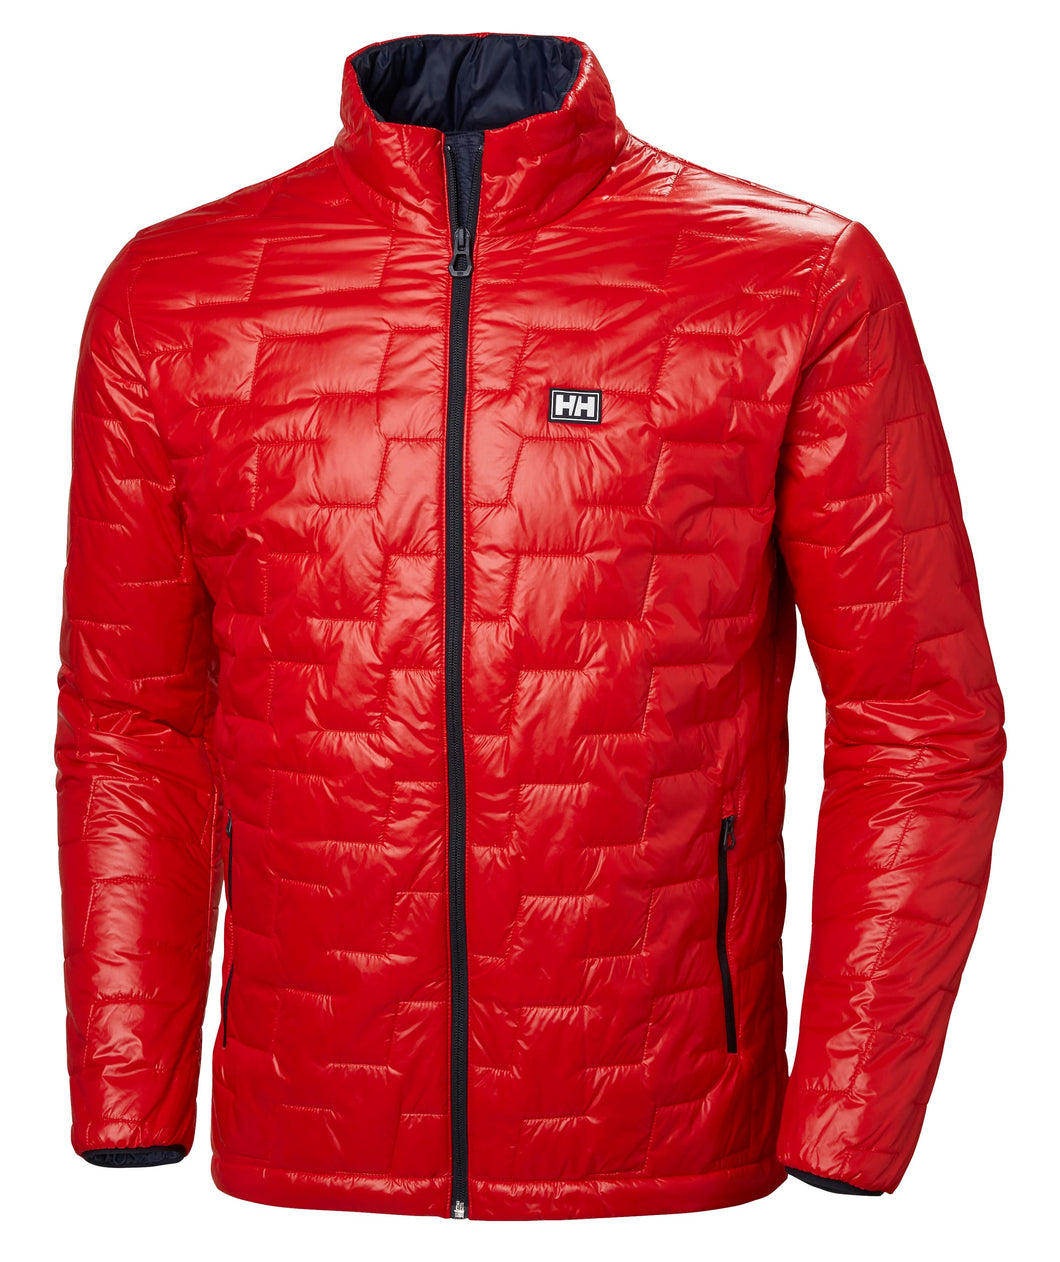 Helly Hansen Men's Lifaloft Insulator Jacket in Alert Red from the front